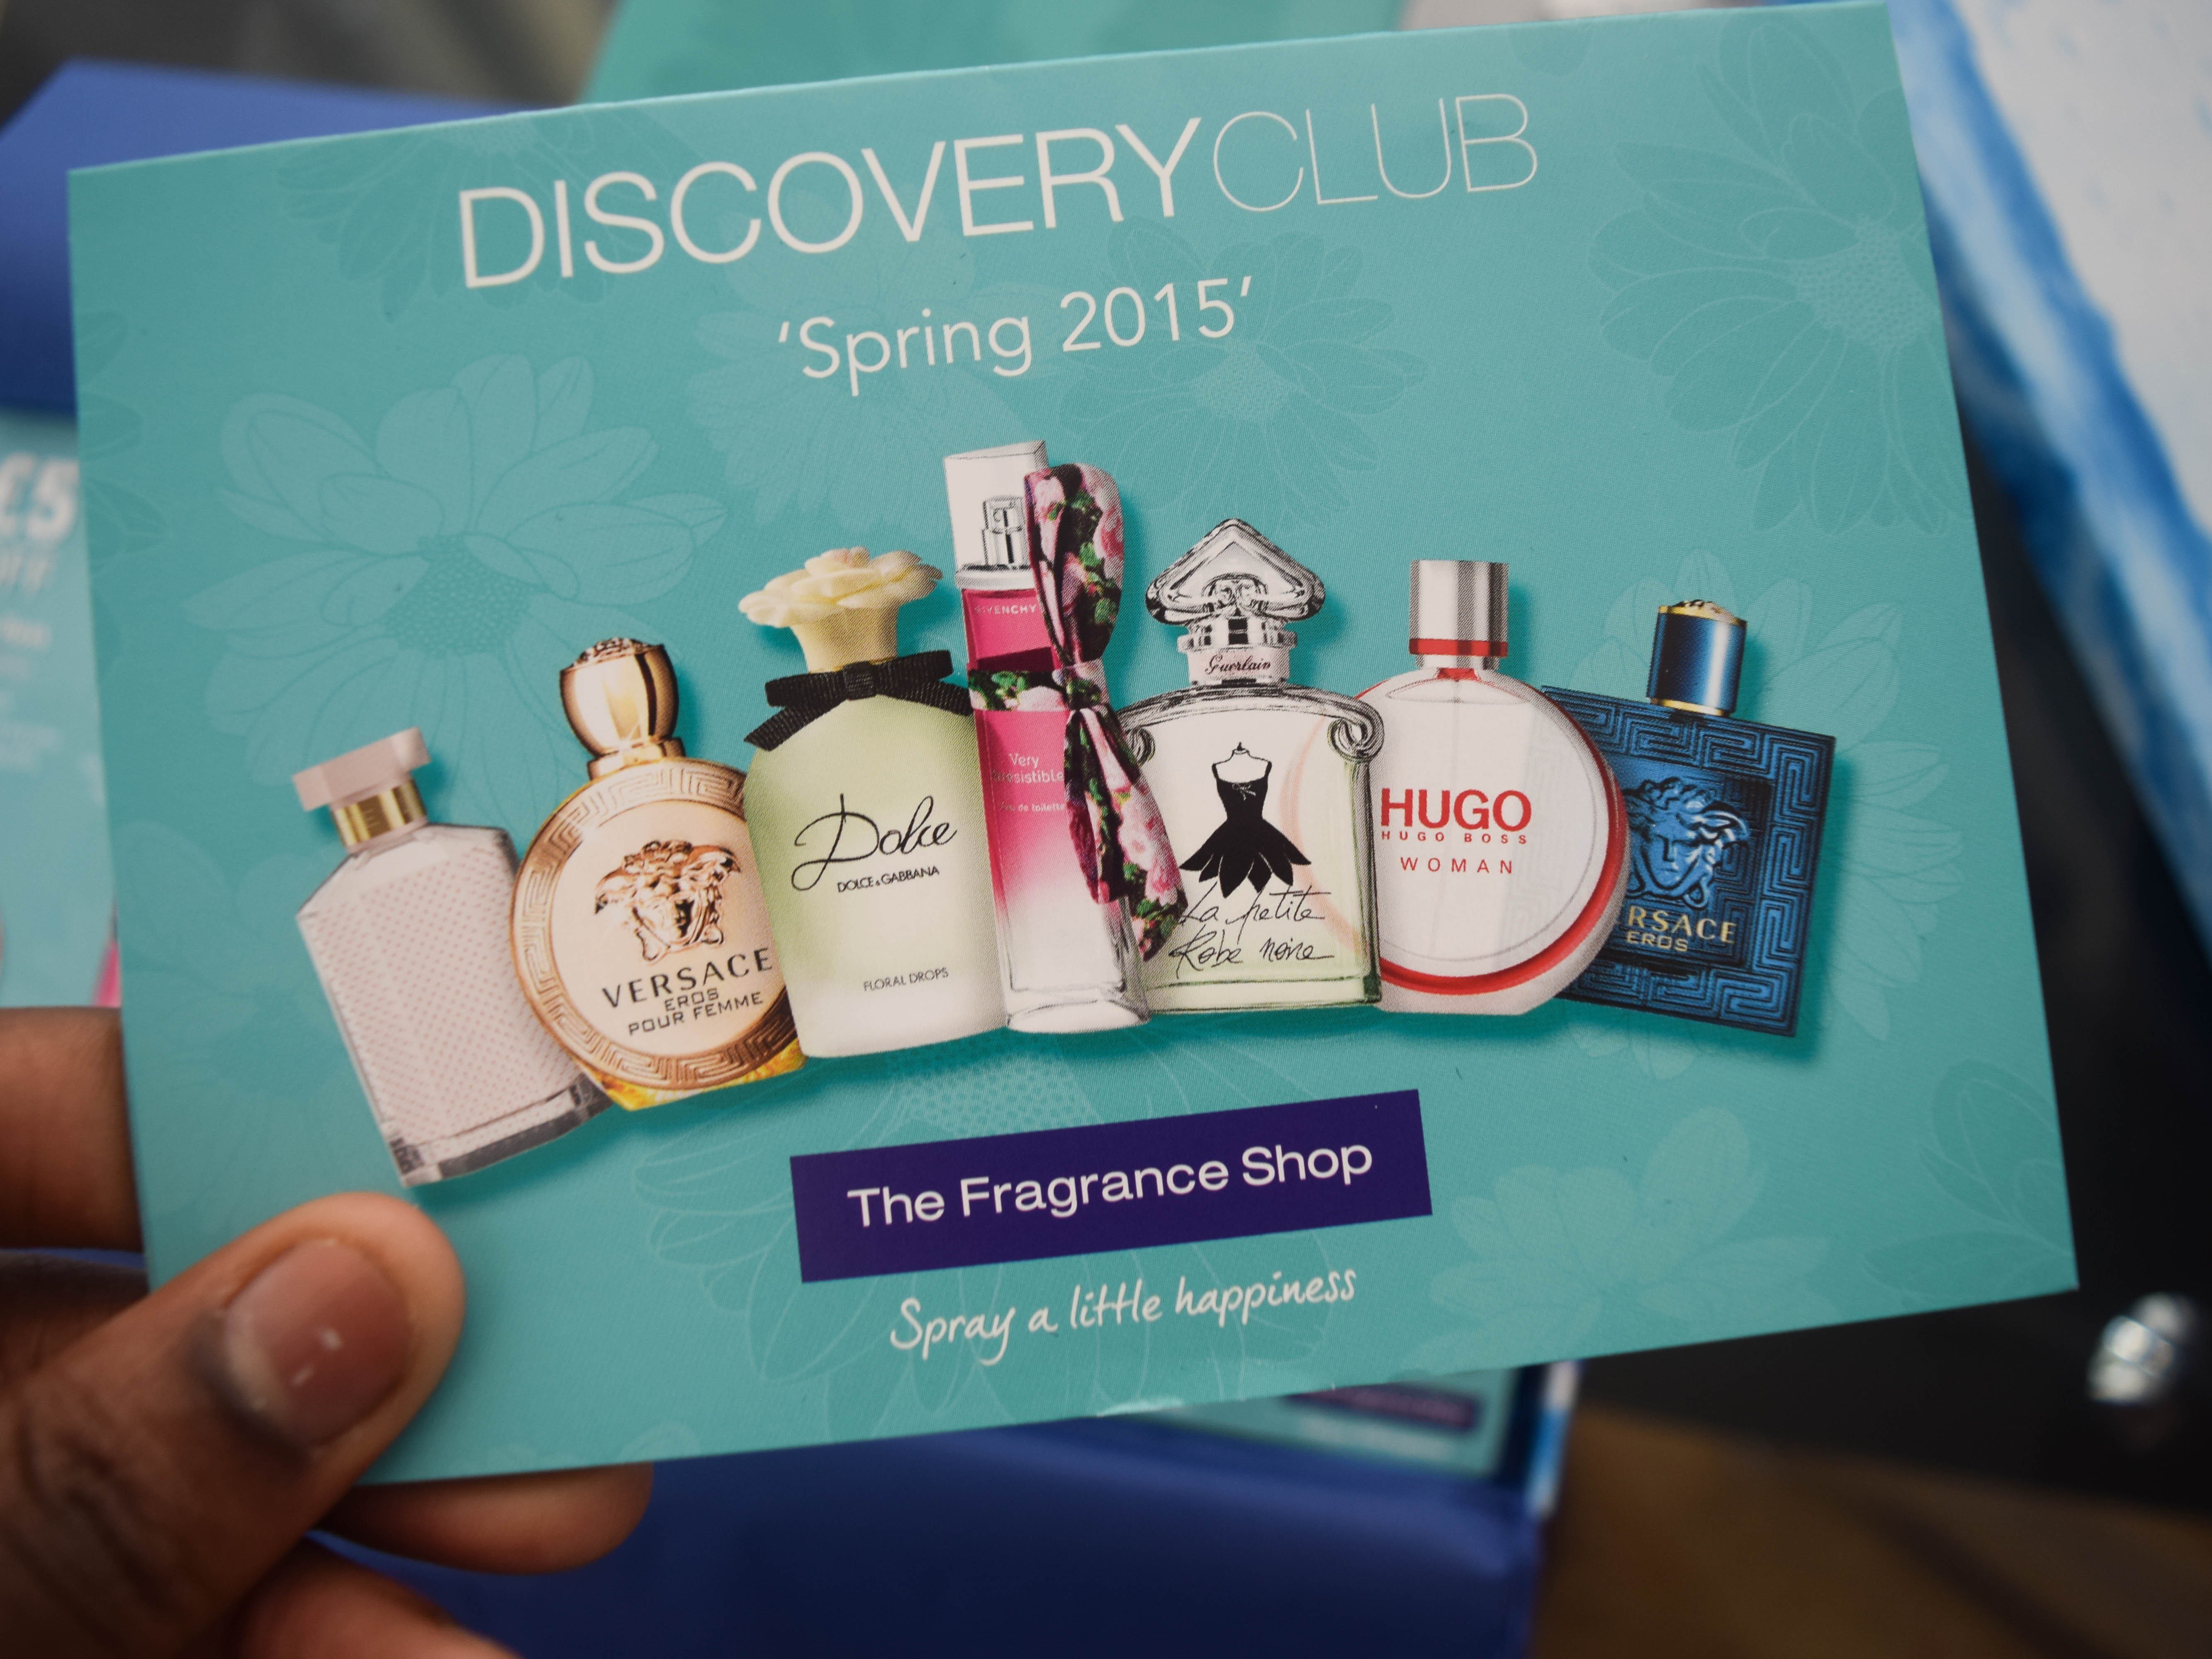 The Discovery Club